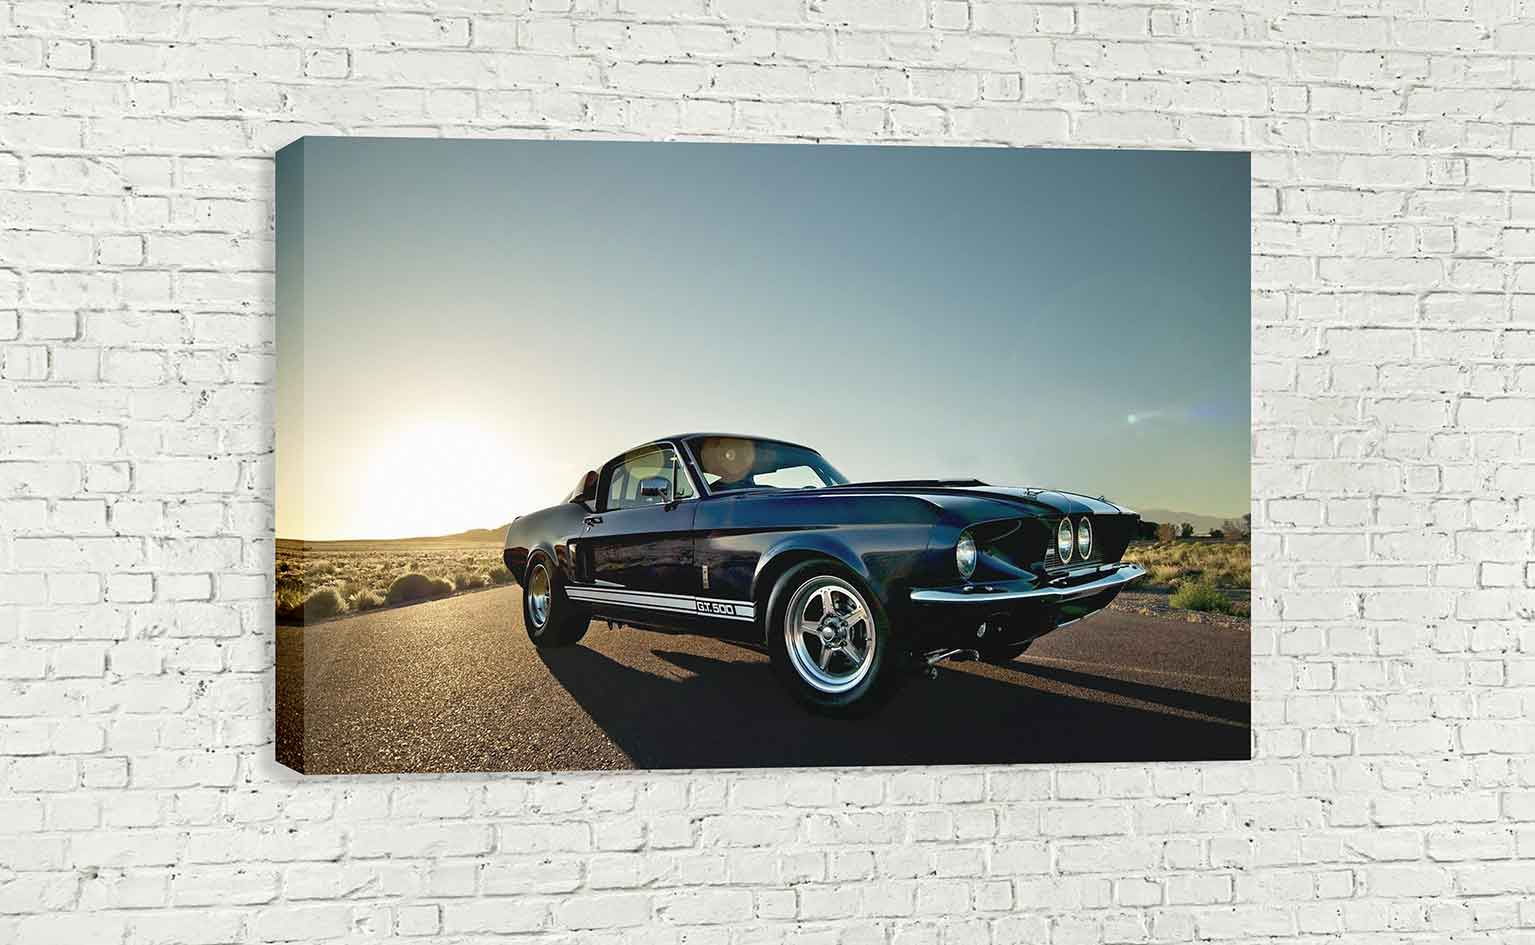 Ford Mustang Muscle Car Vintage Classic 1967 Gt500 Eleanor Wall Art